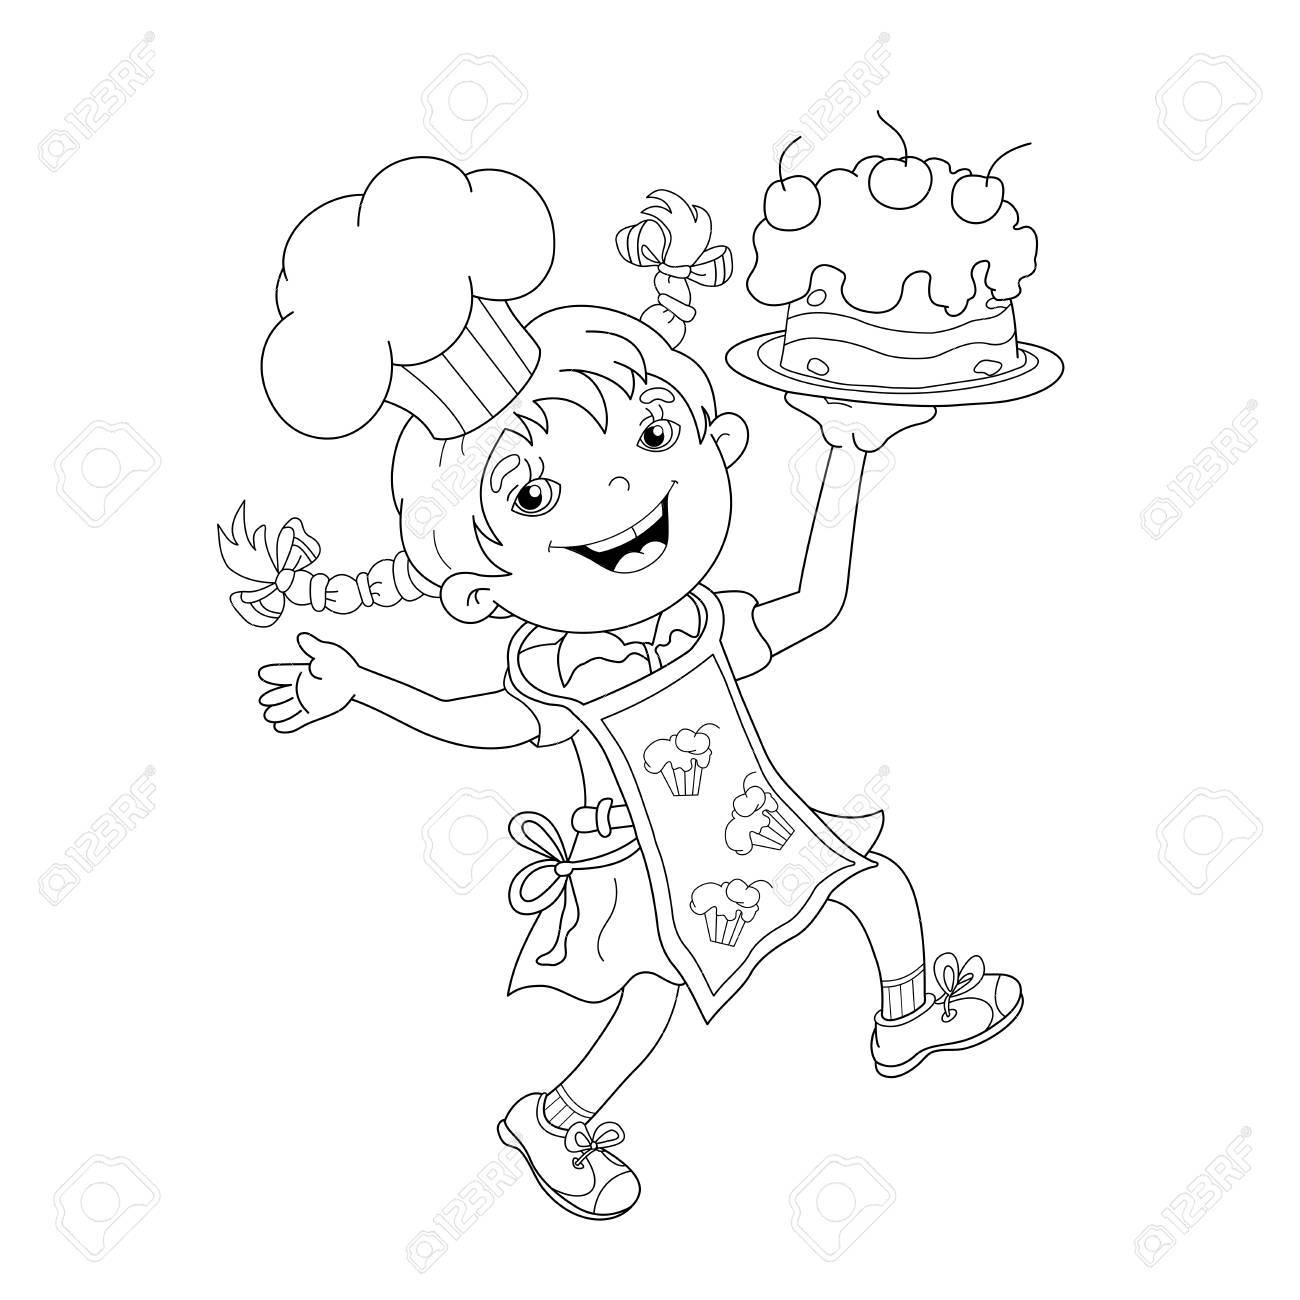 Coloring Page Outline Of Cartoon Girl Chef With Cake Book For Kids Stock Vector